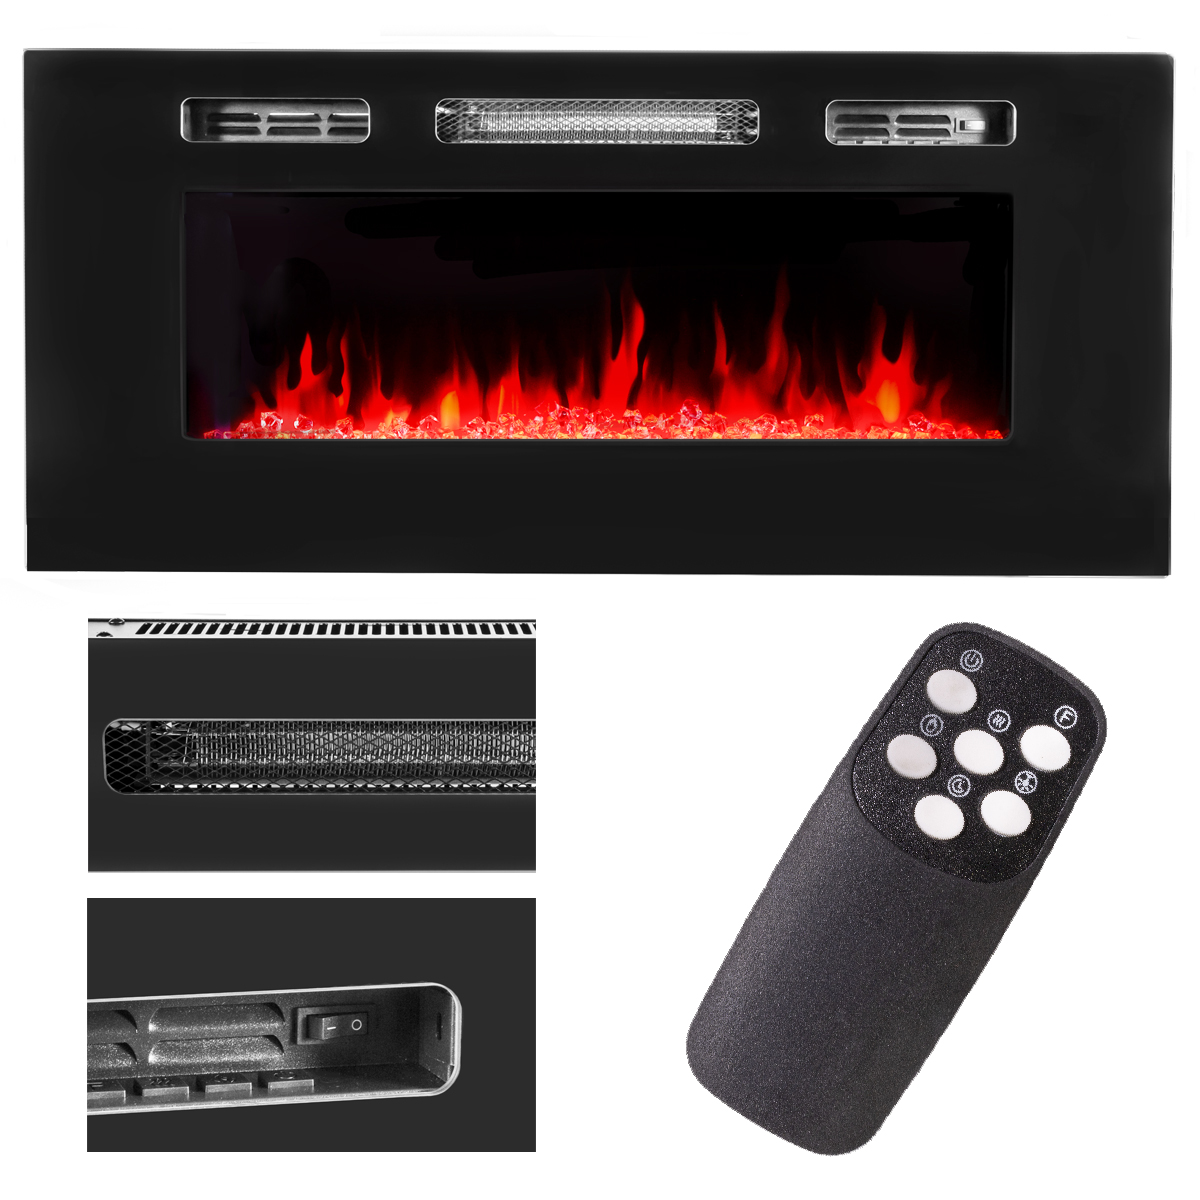 Astounding Details About 40 1500W Recessed Wall Mount Fireplace Electric Insert Heater Multi Flames Interior Design Ideas Gentotryabchikinfo